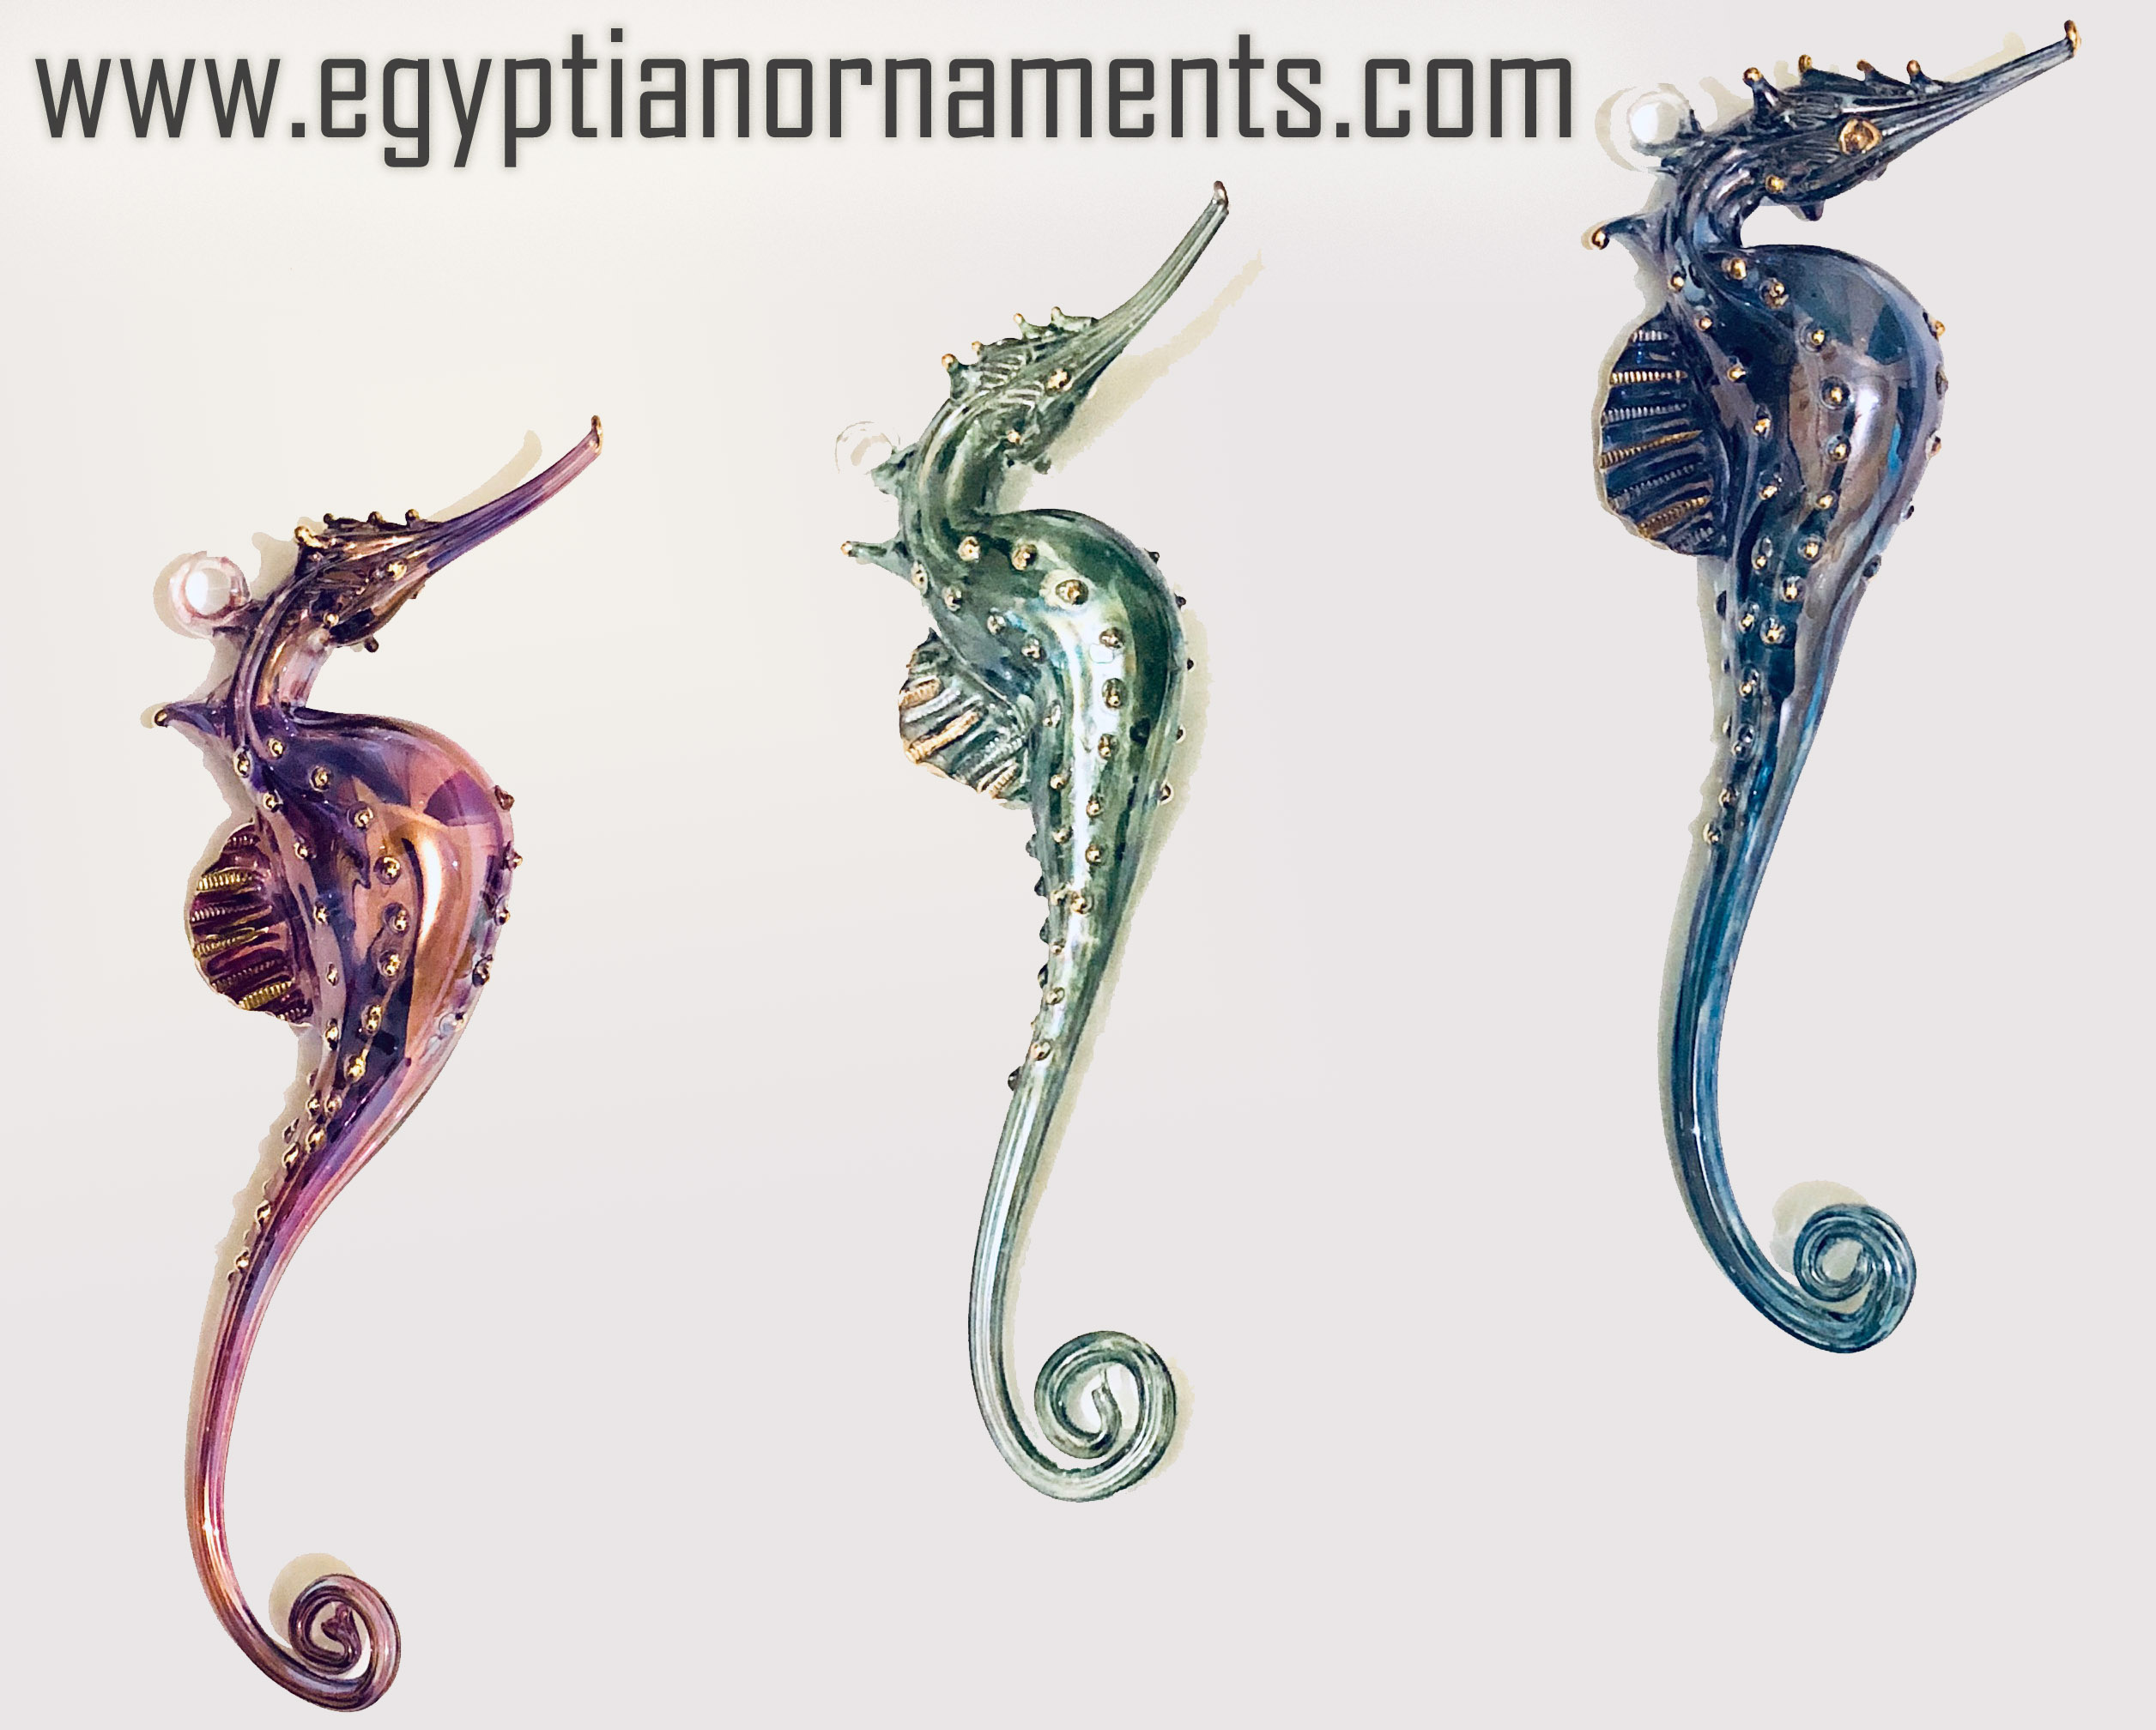 50 Hand Blown Glass Seahorse Christmas Ornaments